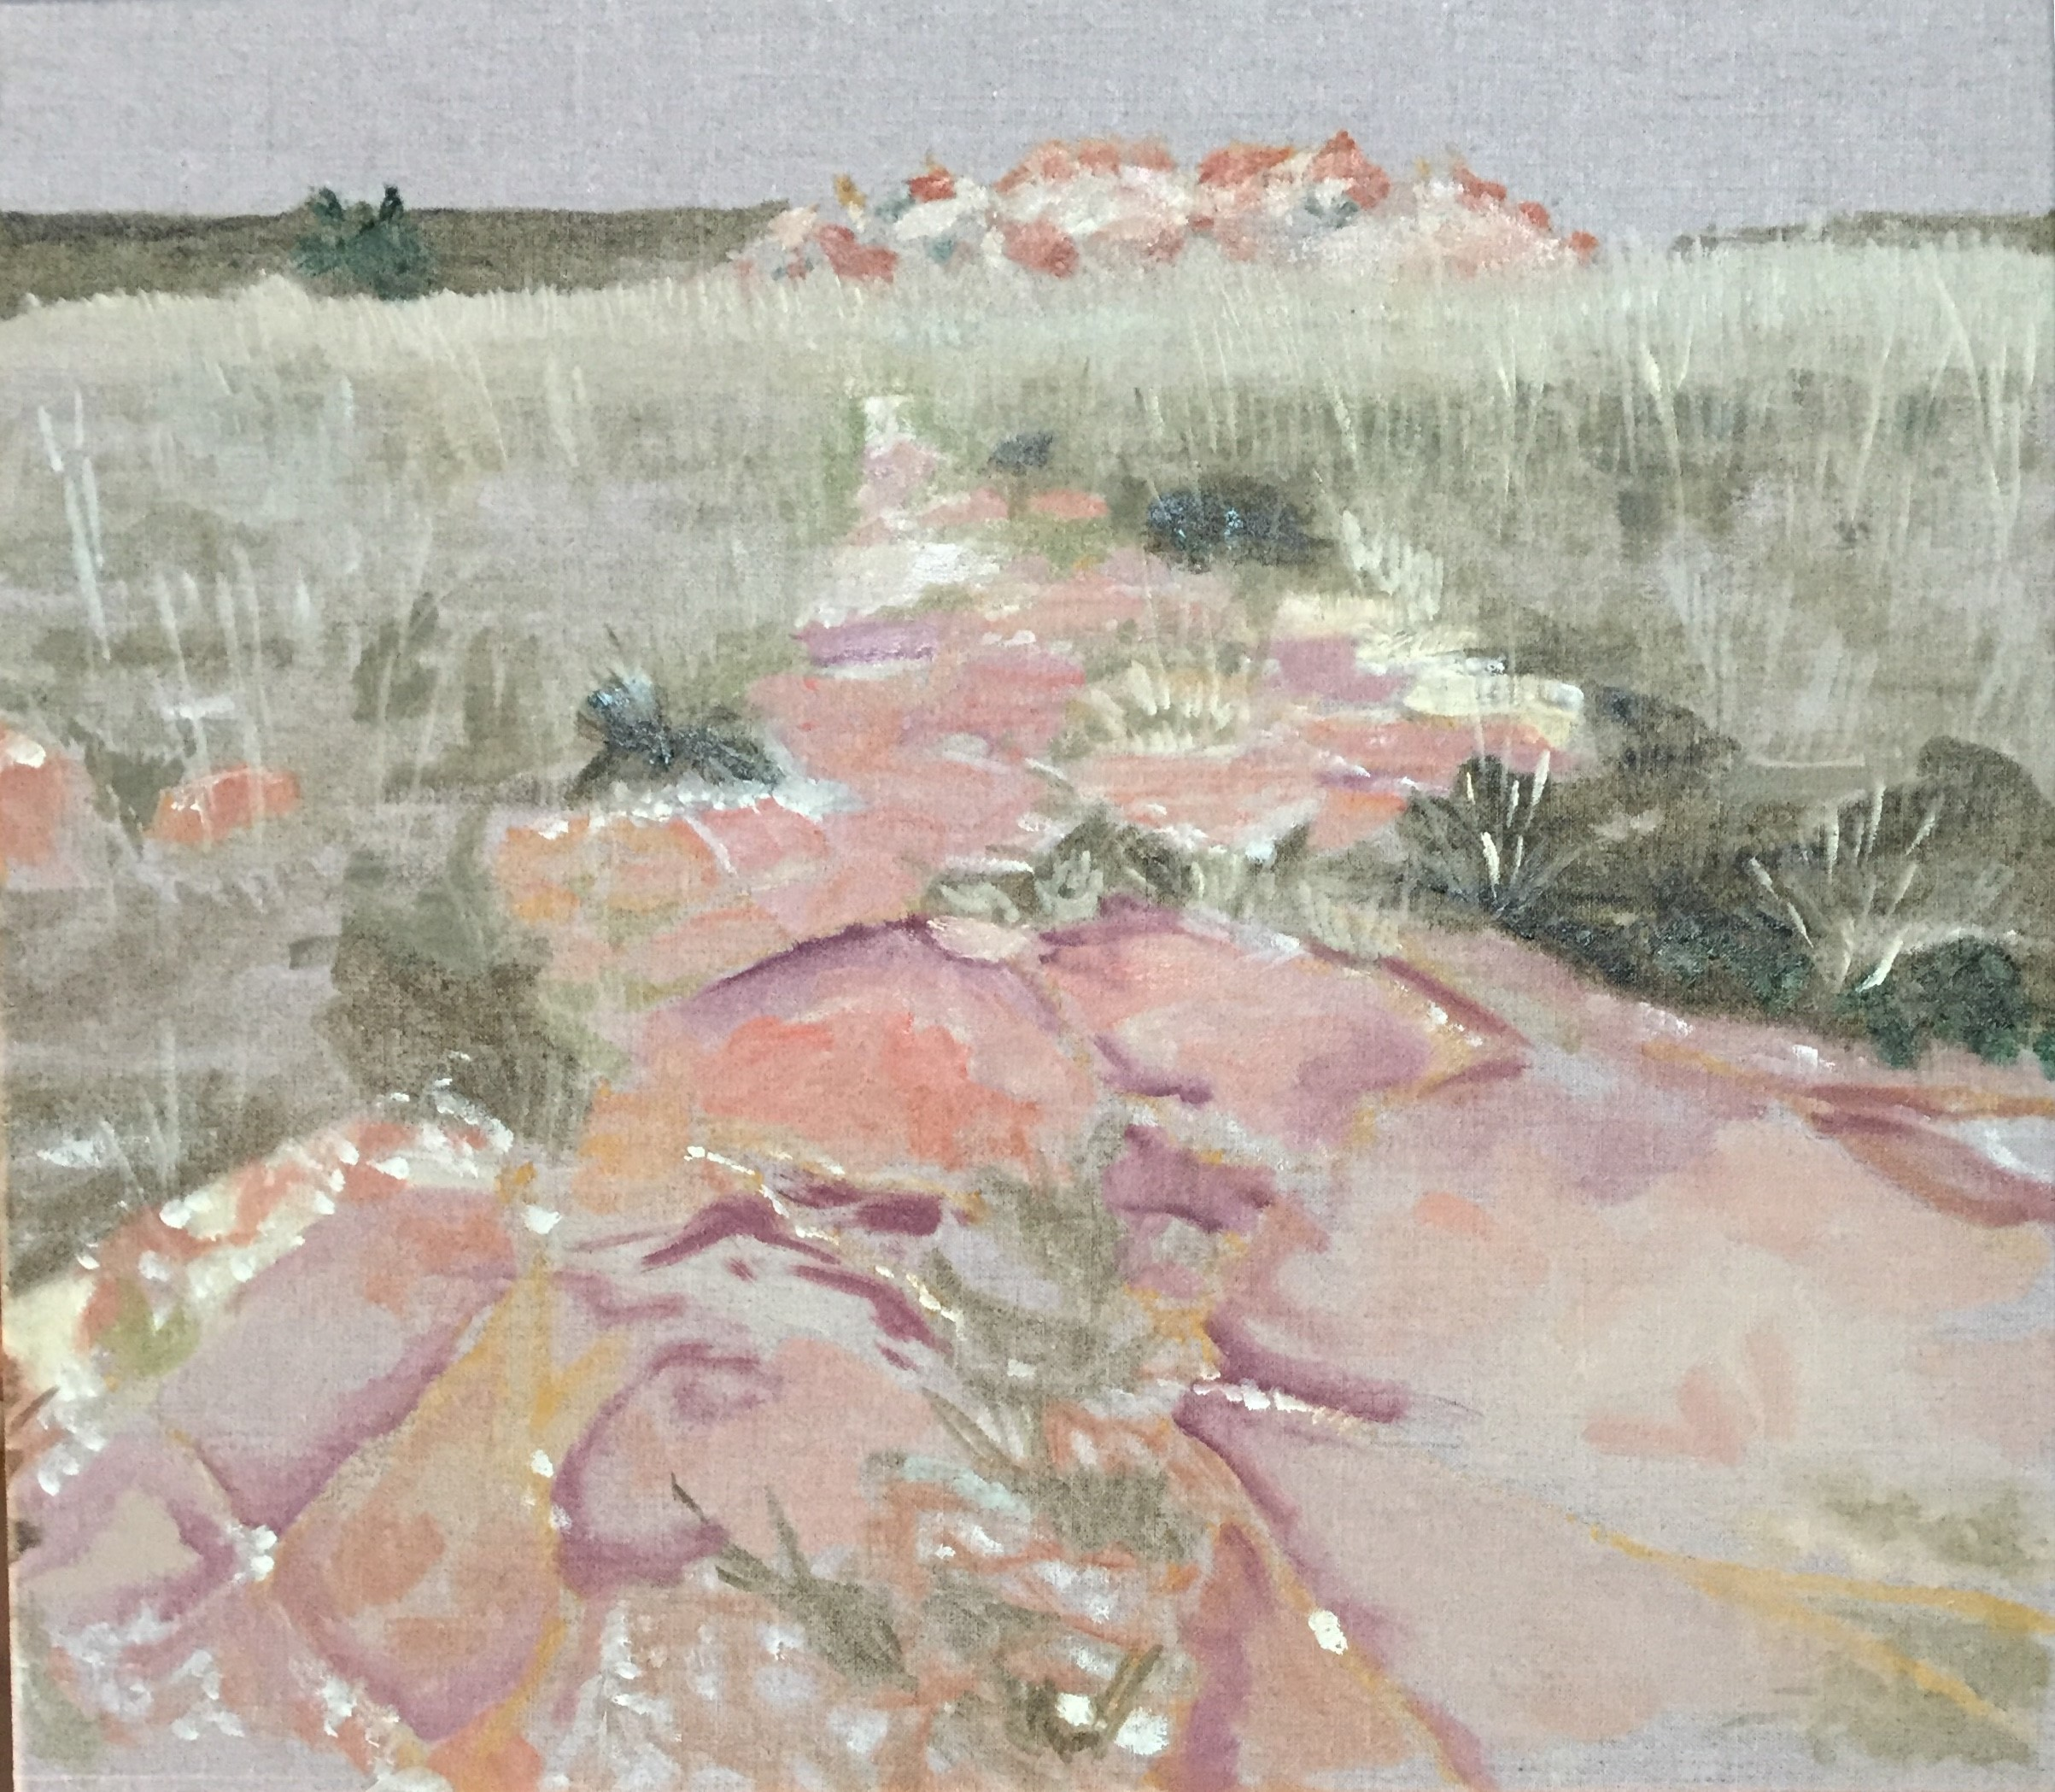 Pink Path, Melville Koppies East  (2018), oil sketch on sized Belgian linen, 35 x 45cm.